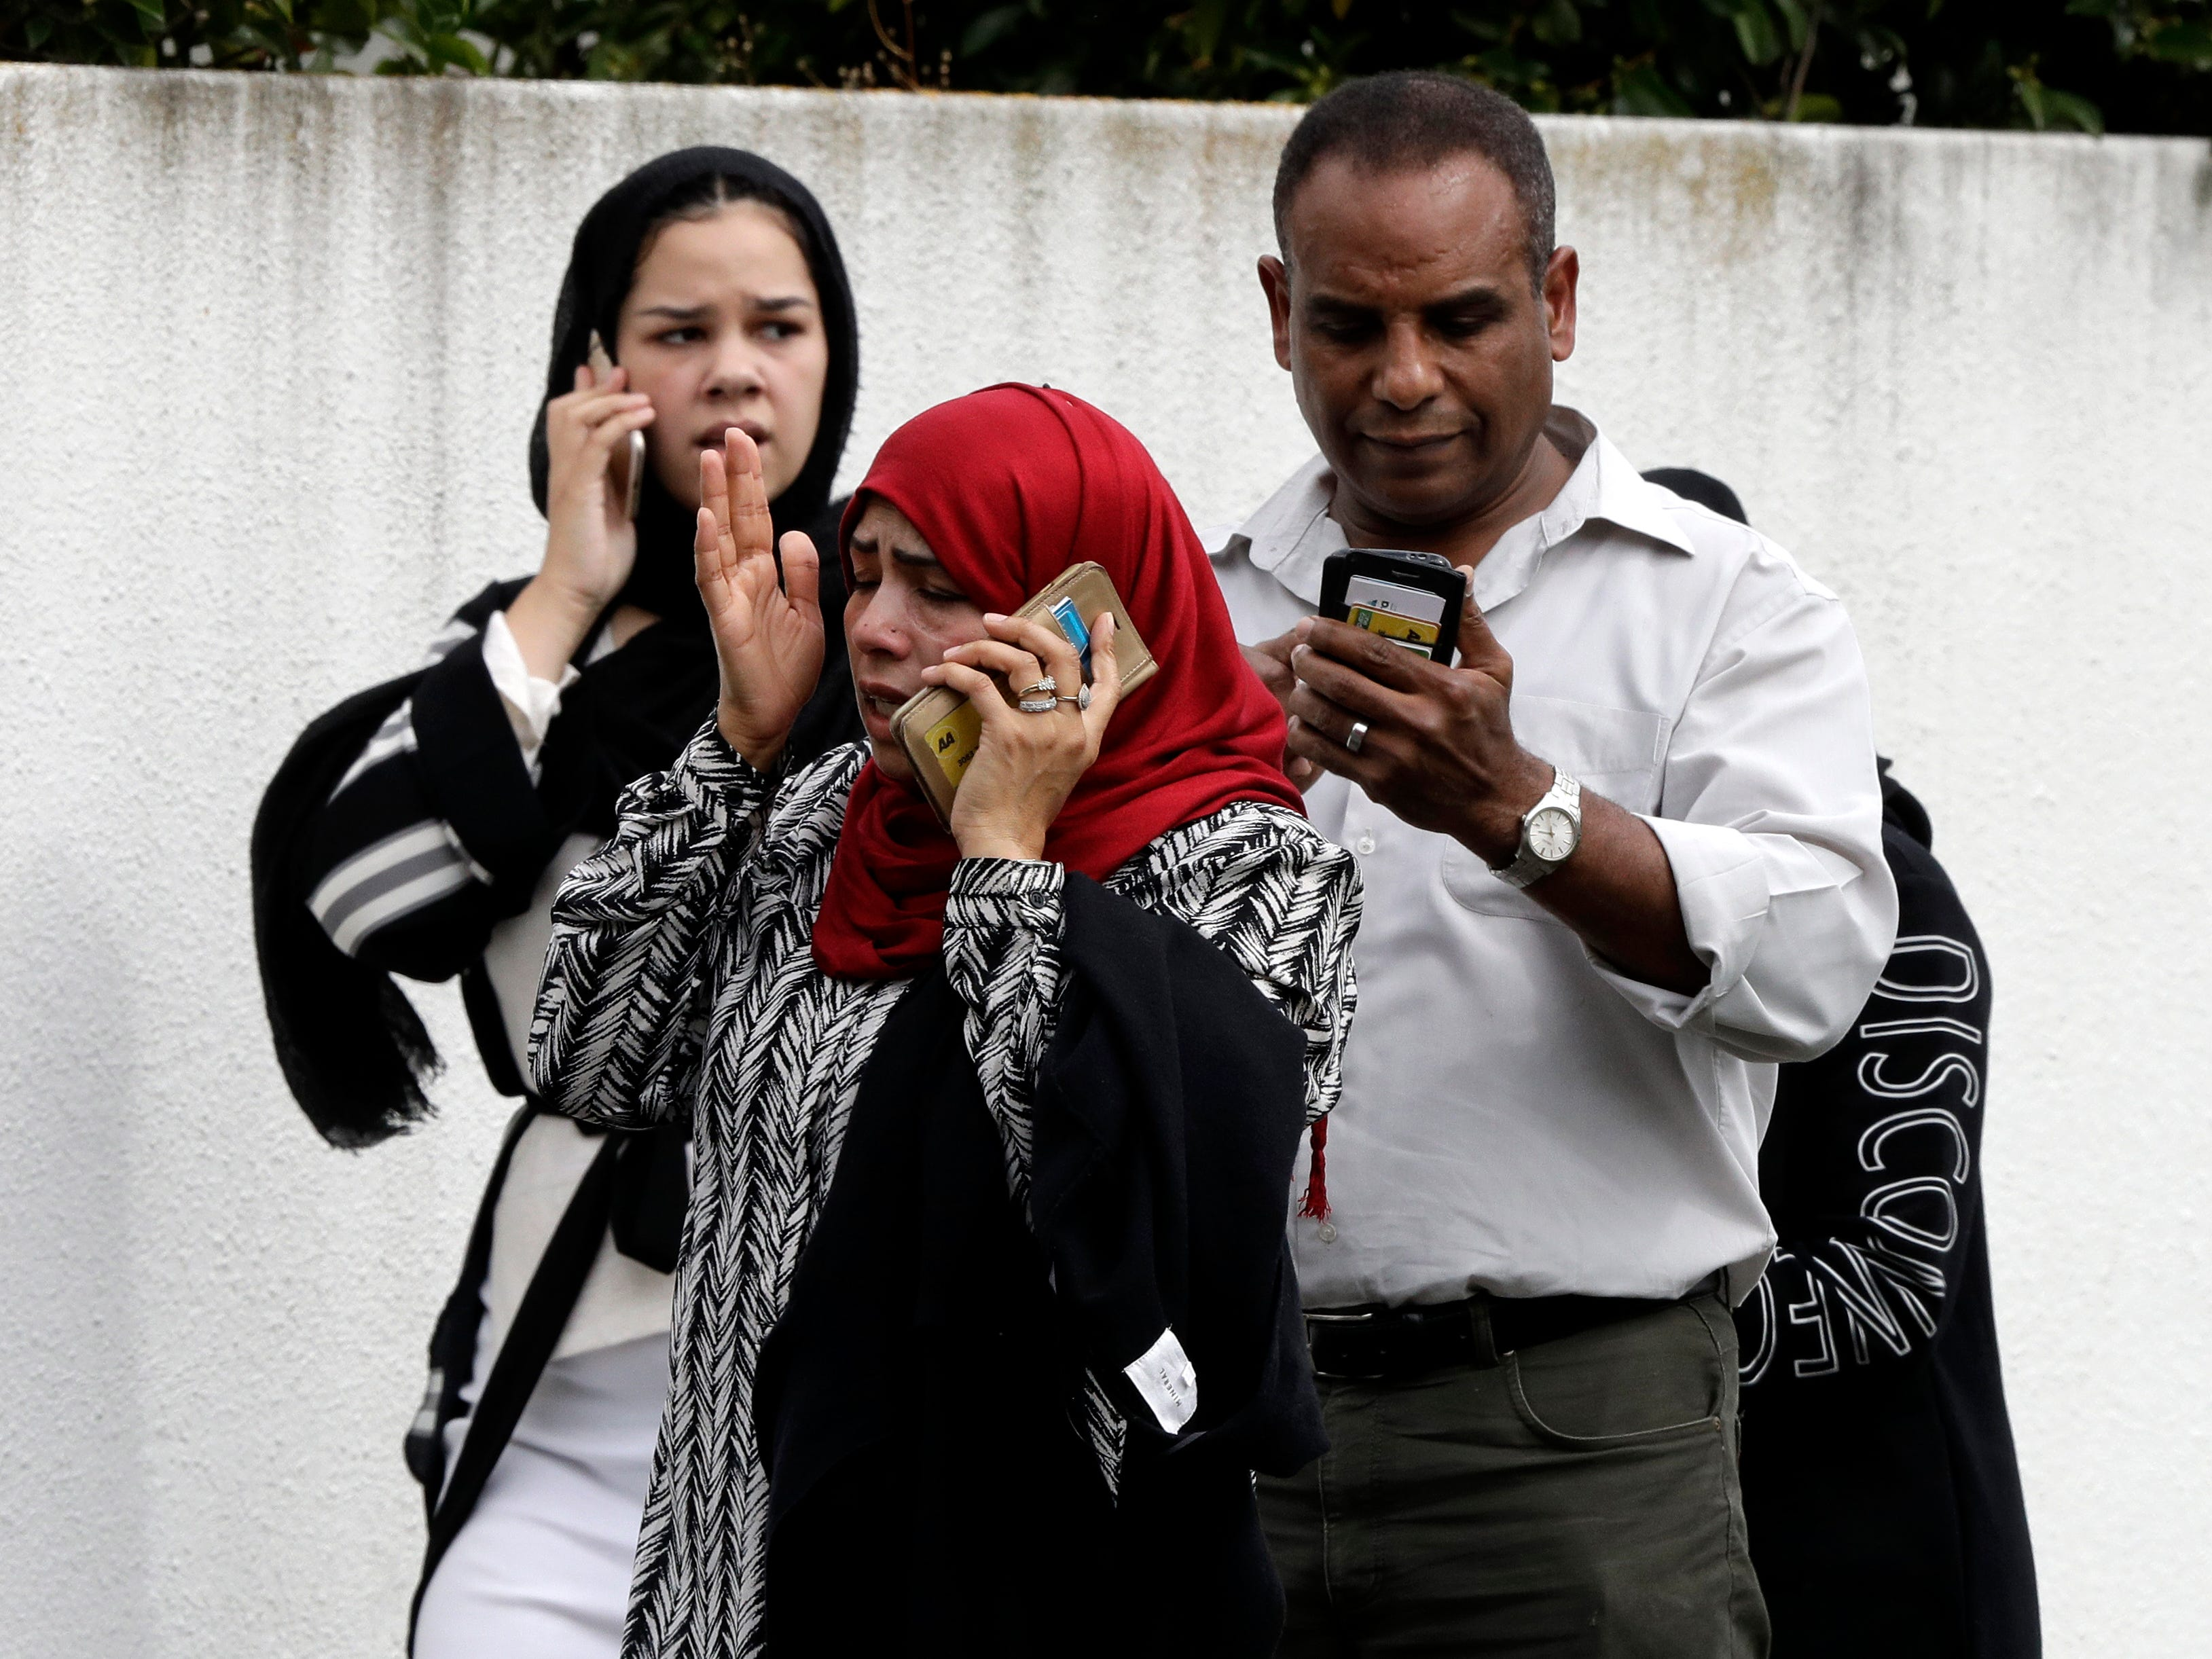 People wait outside a mosque in central Christchurch, New Zealand. At least 49 people were killed and more than 20 were seriously wounded in the shootings at two mosques in Christchurch.